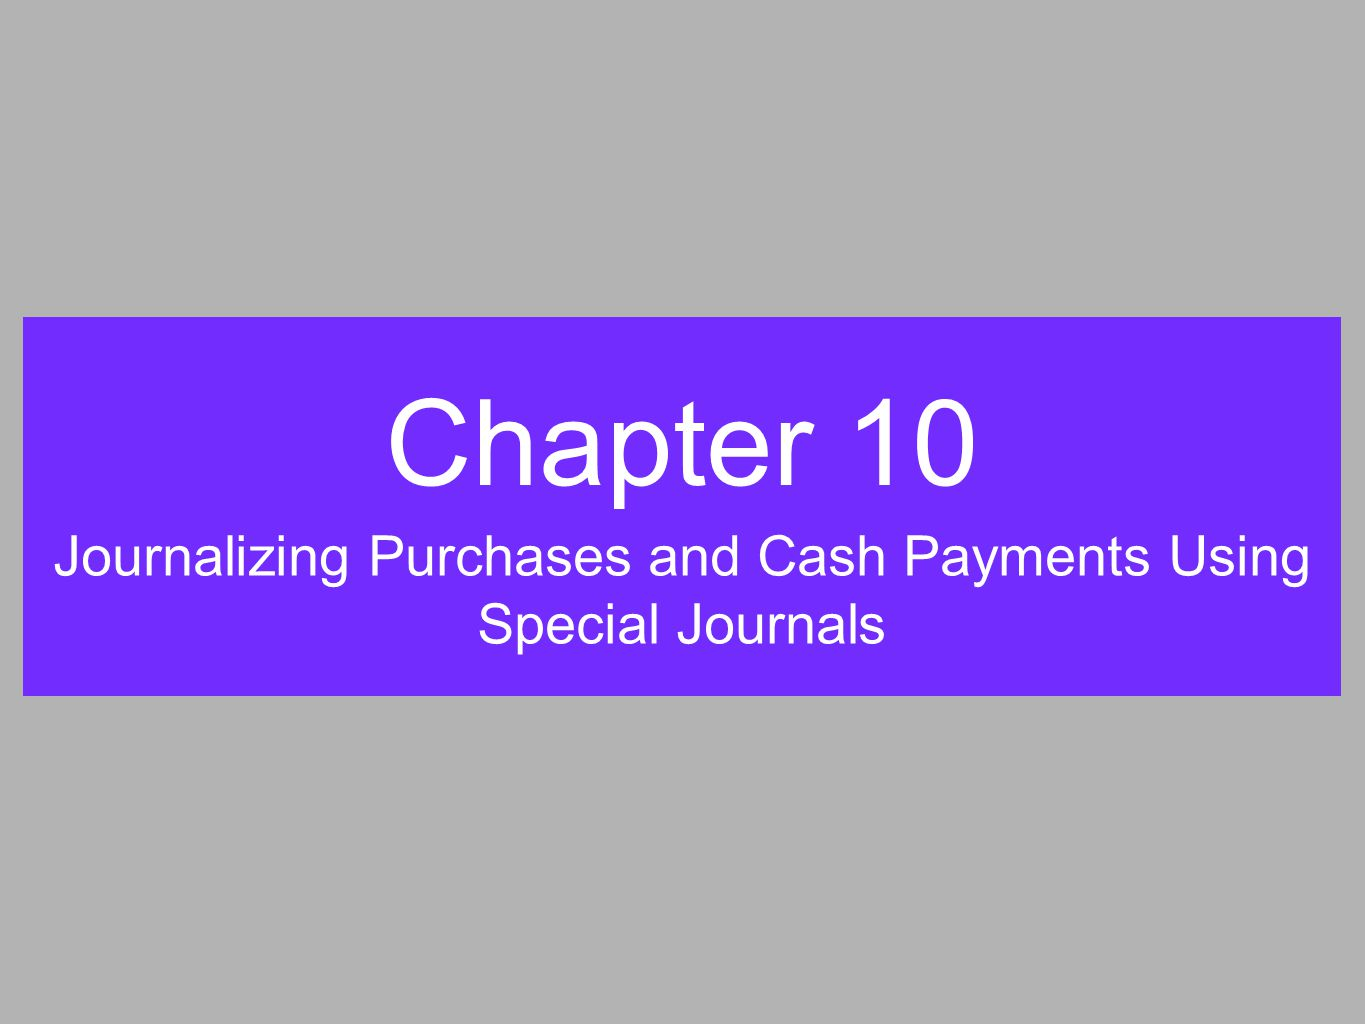 Chapter 10 Journalizing Purchases and Cash Payments Using Special Journals